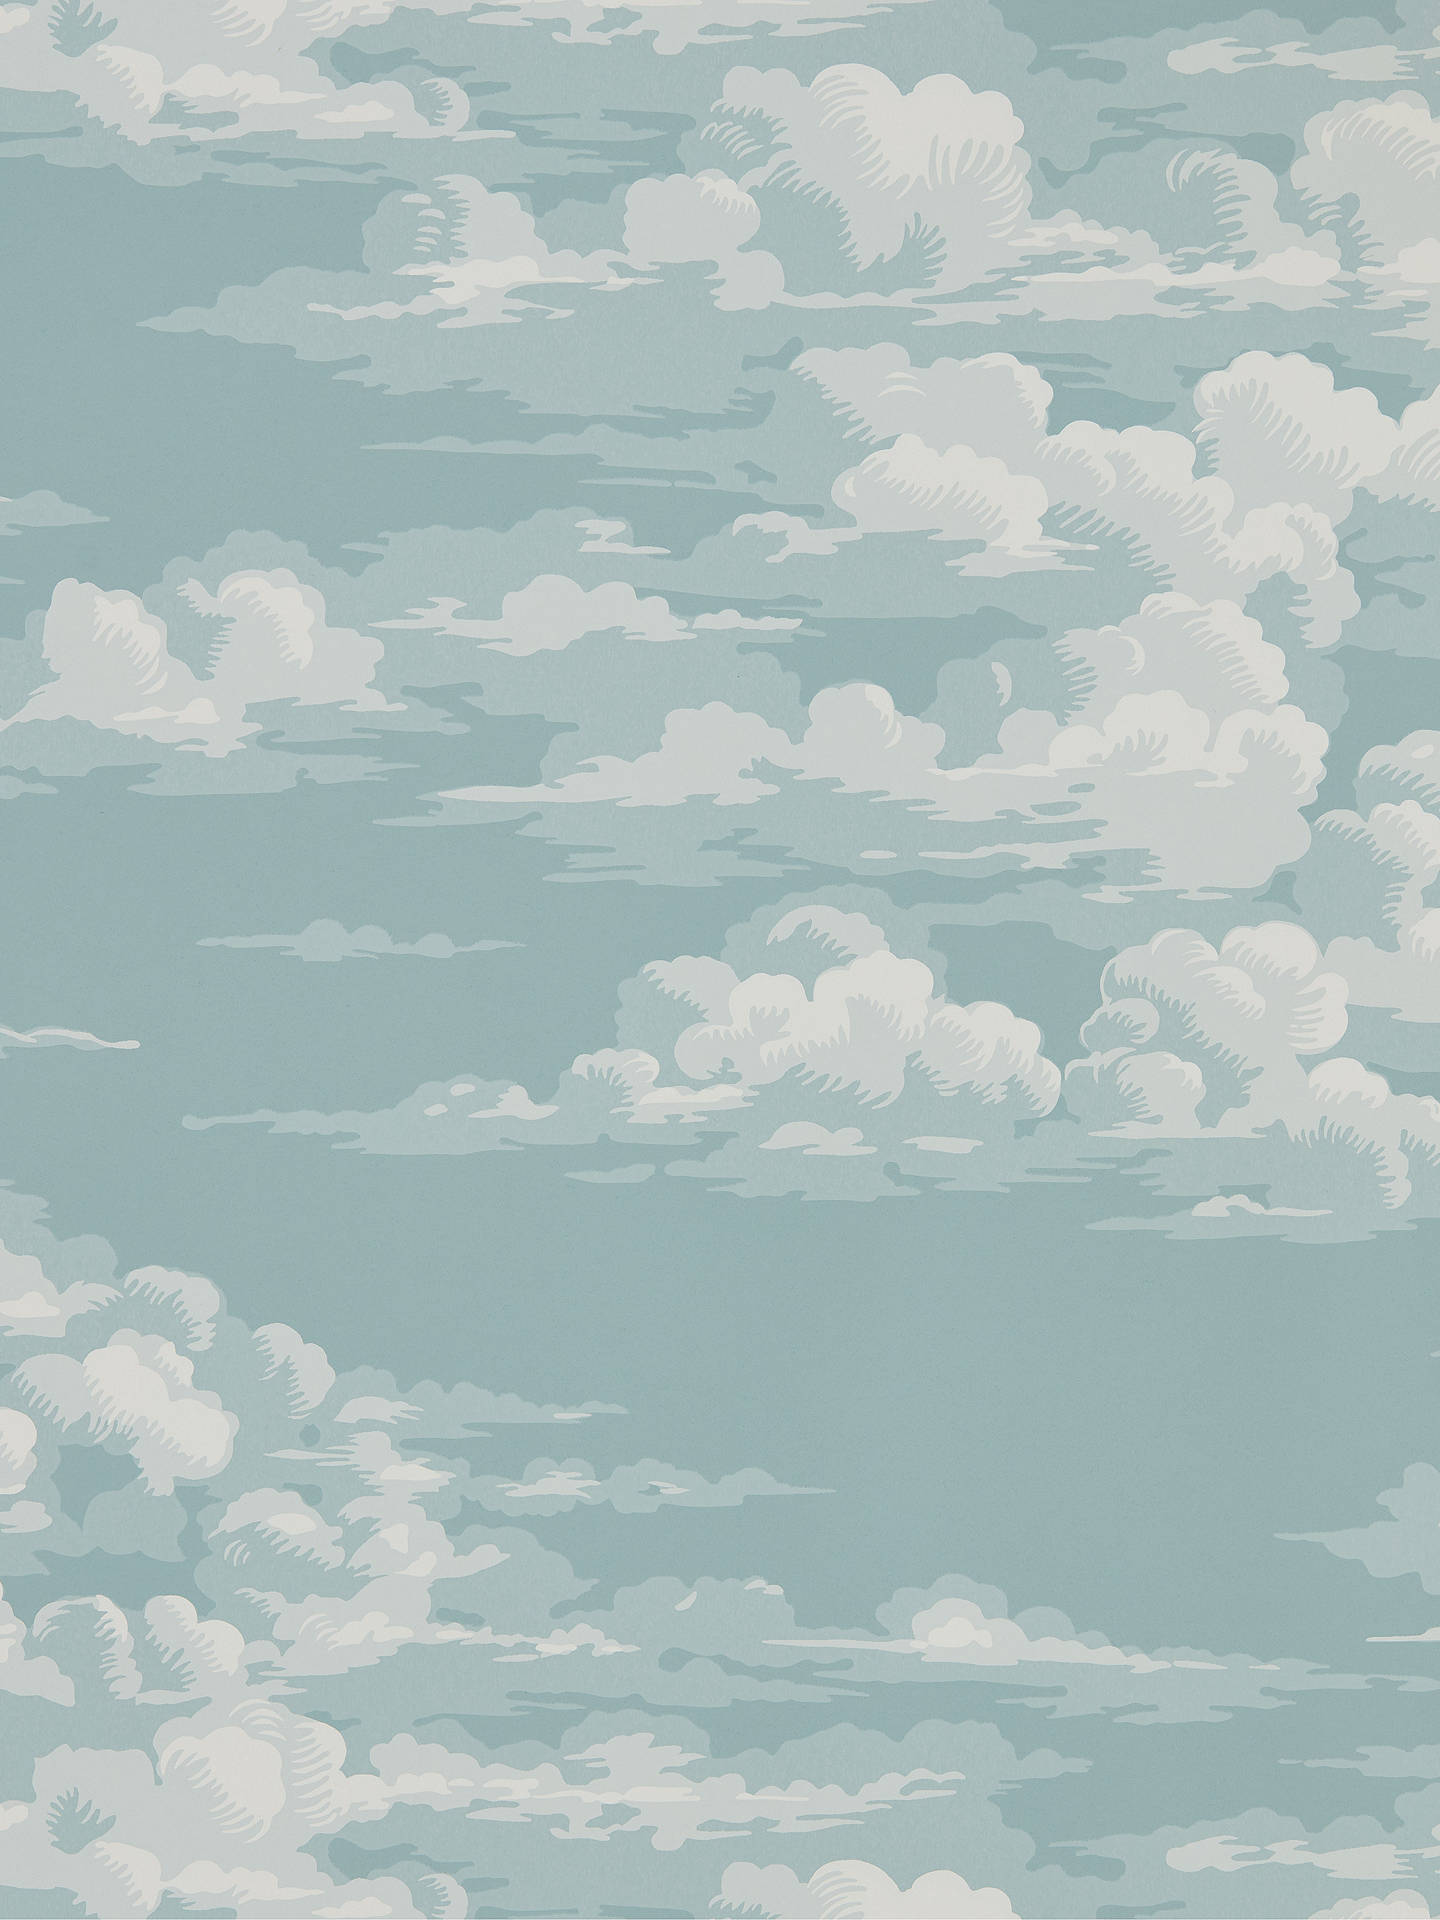 Buy Sanderson Silvi Clouds Wallpaper, 216599 Online at johnlewis.com